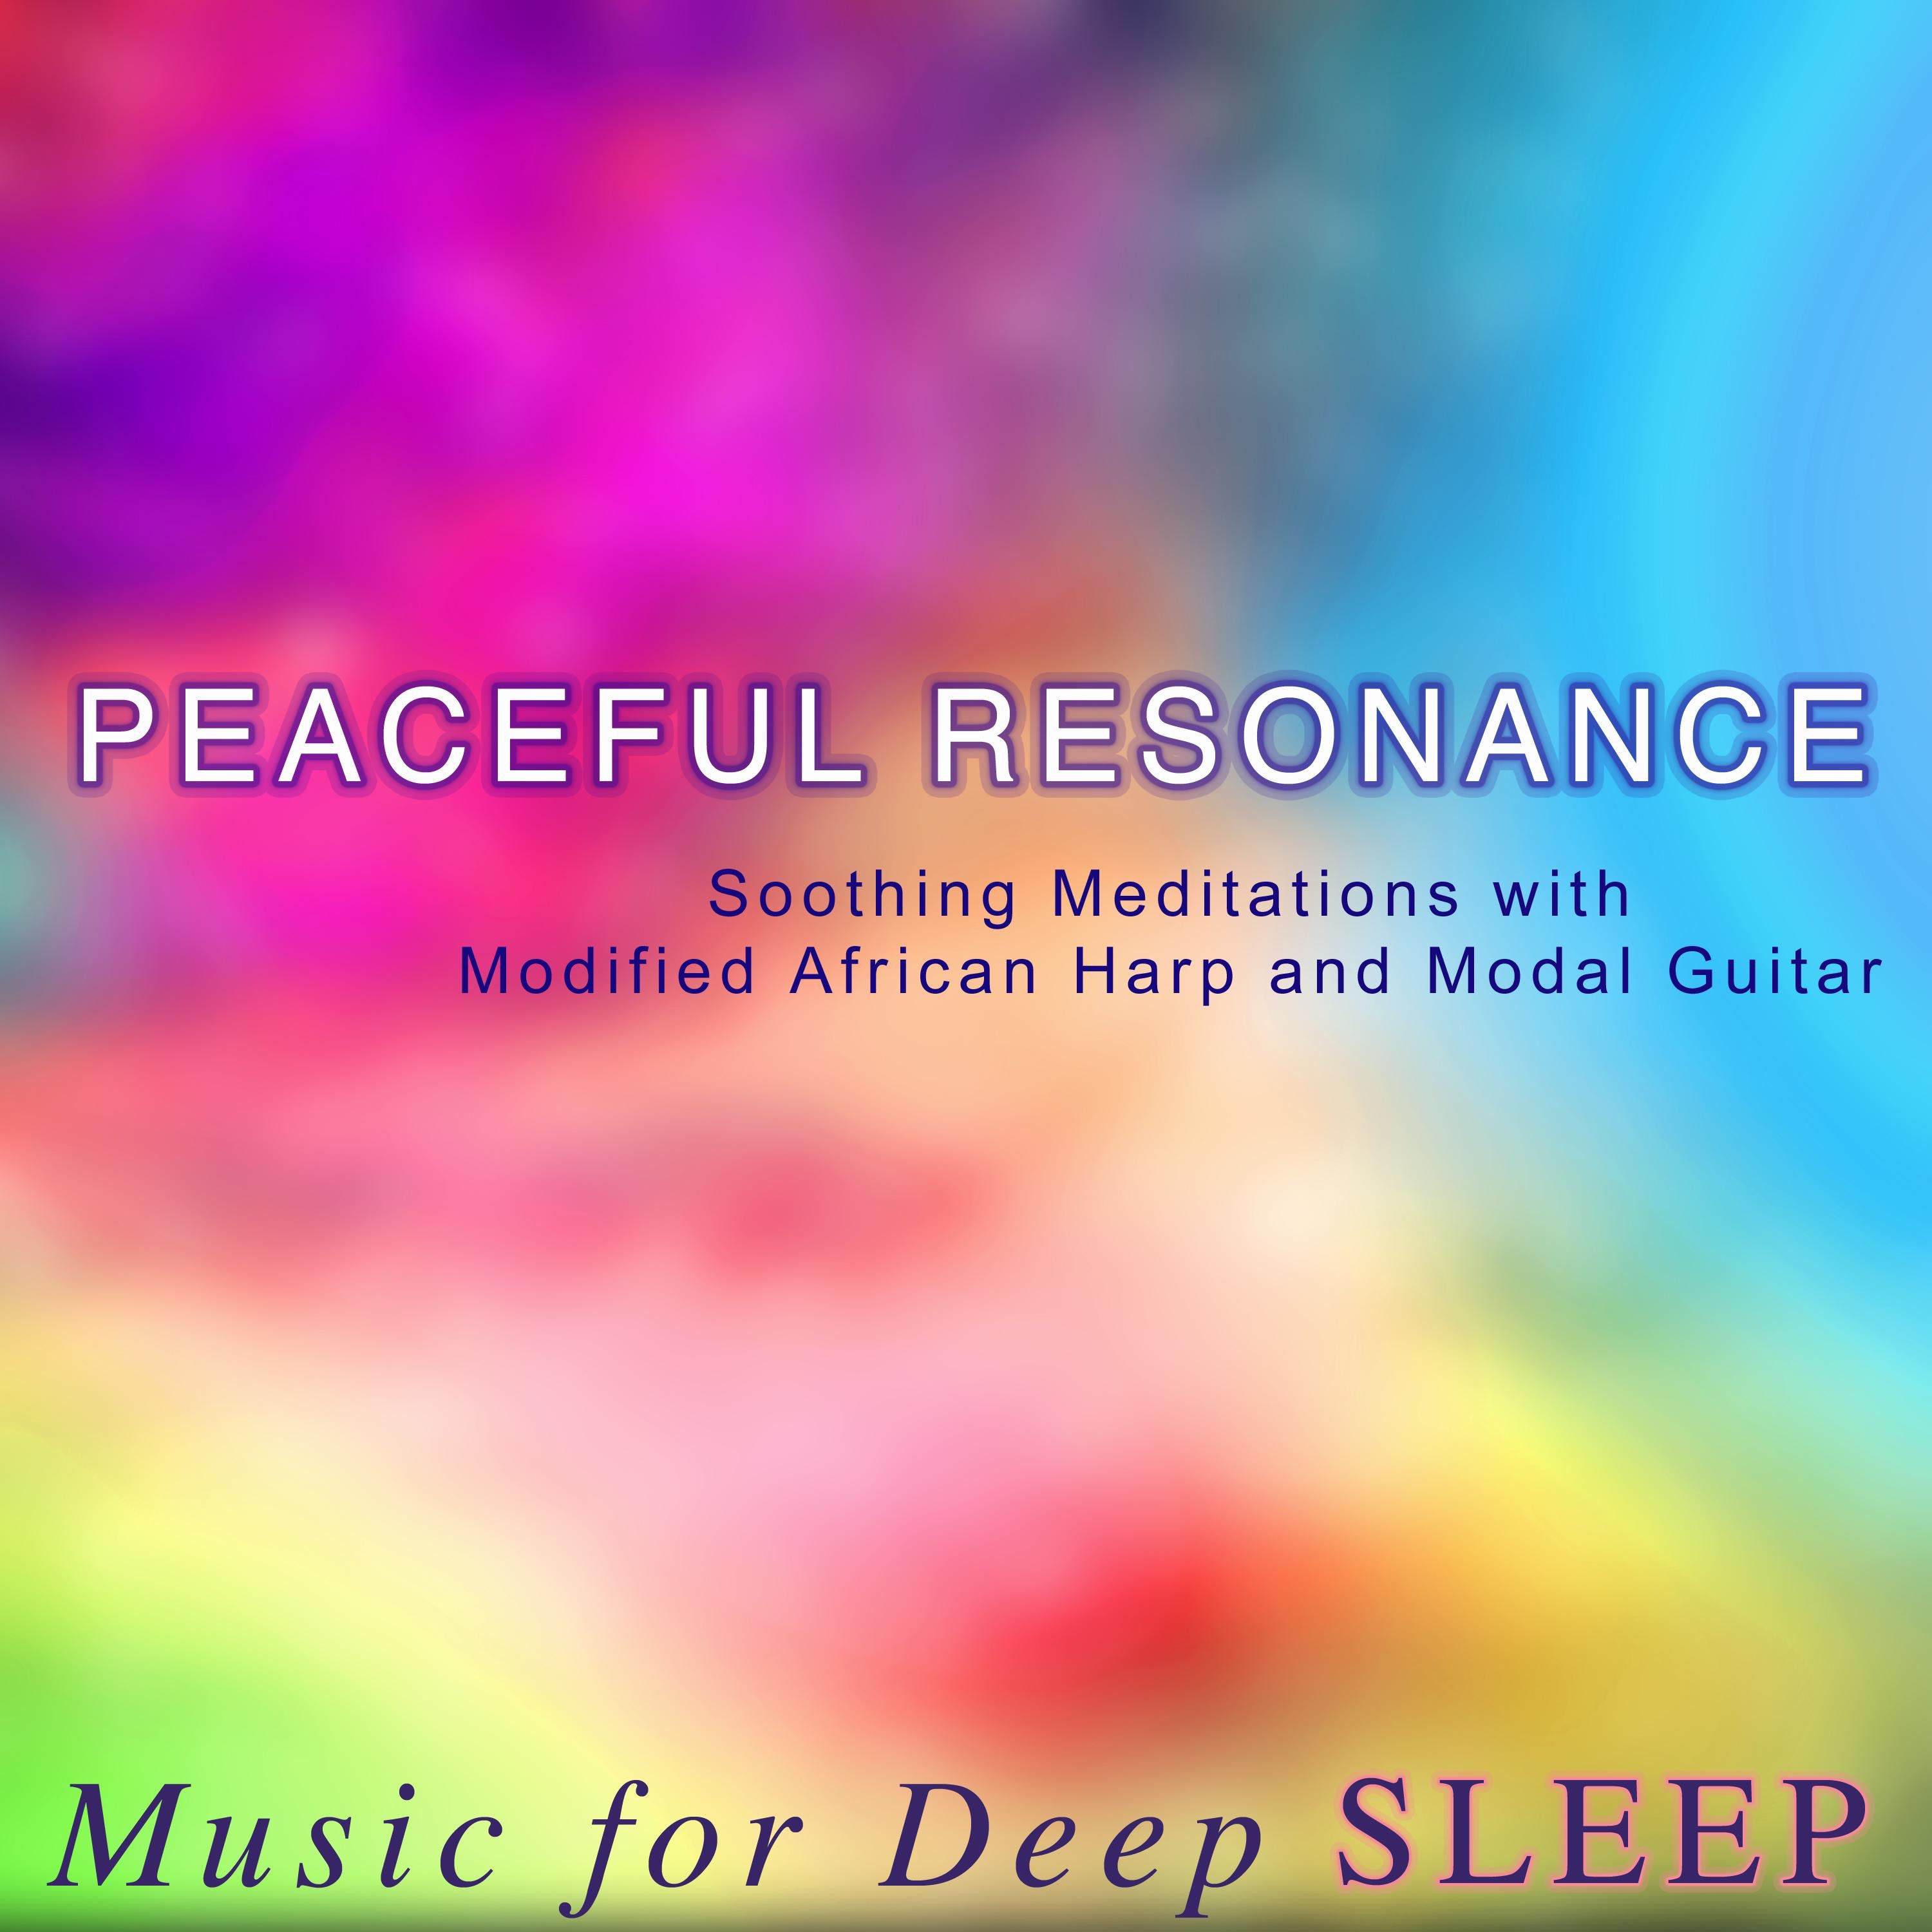 Peaceful Resonance: Soothing Harp and Guitar Meditations